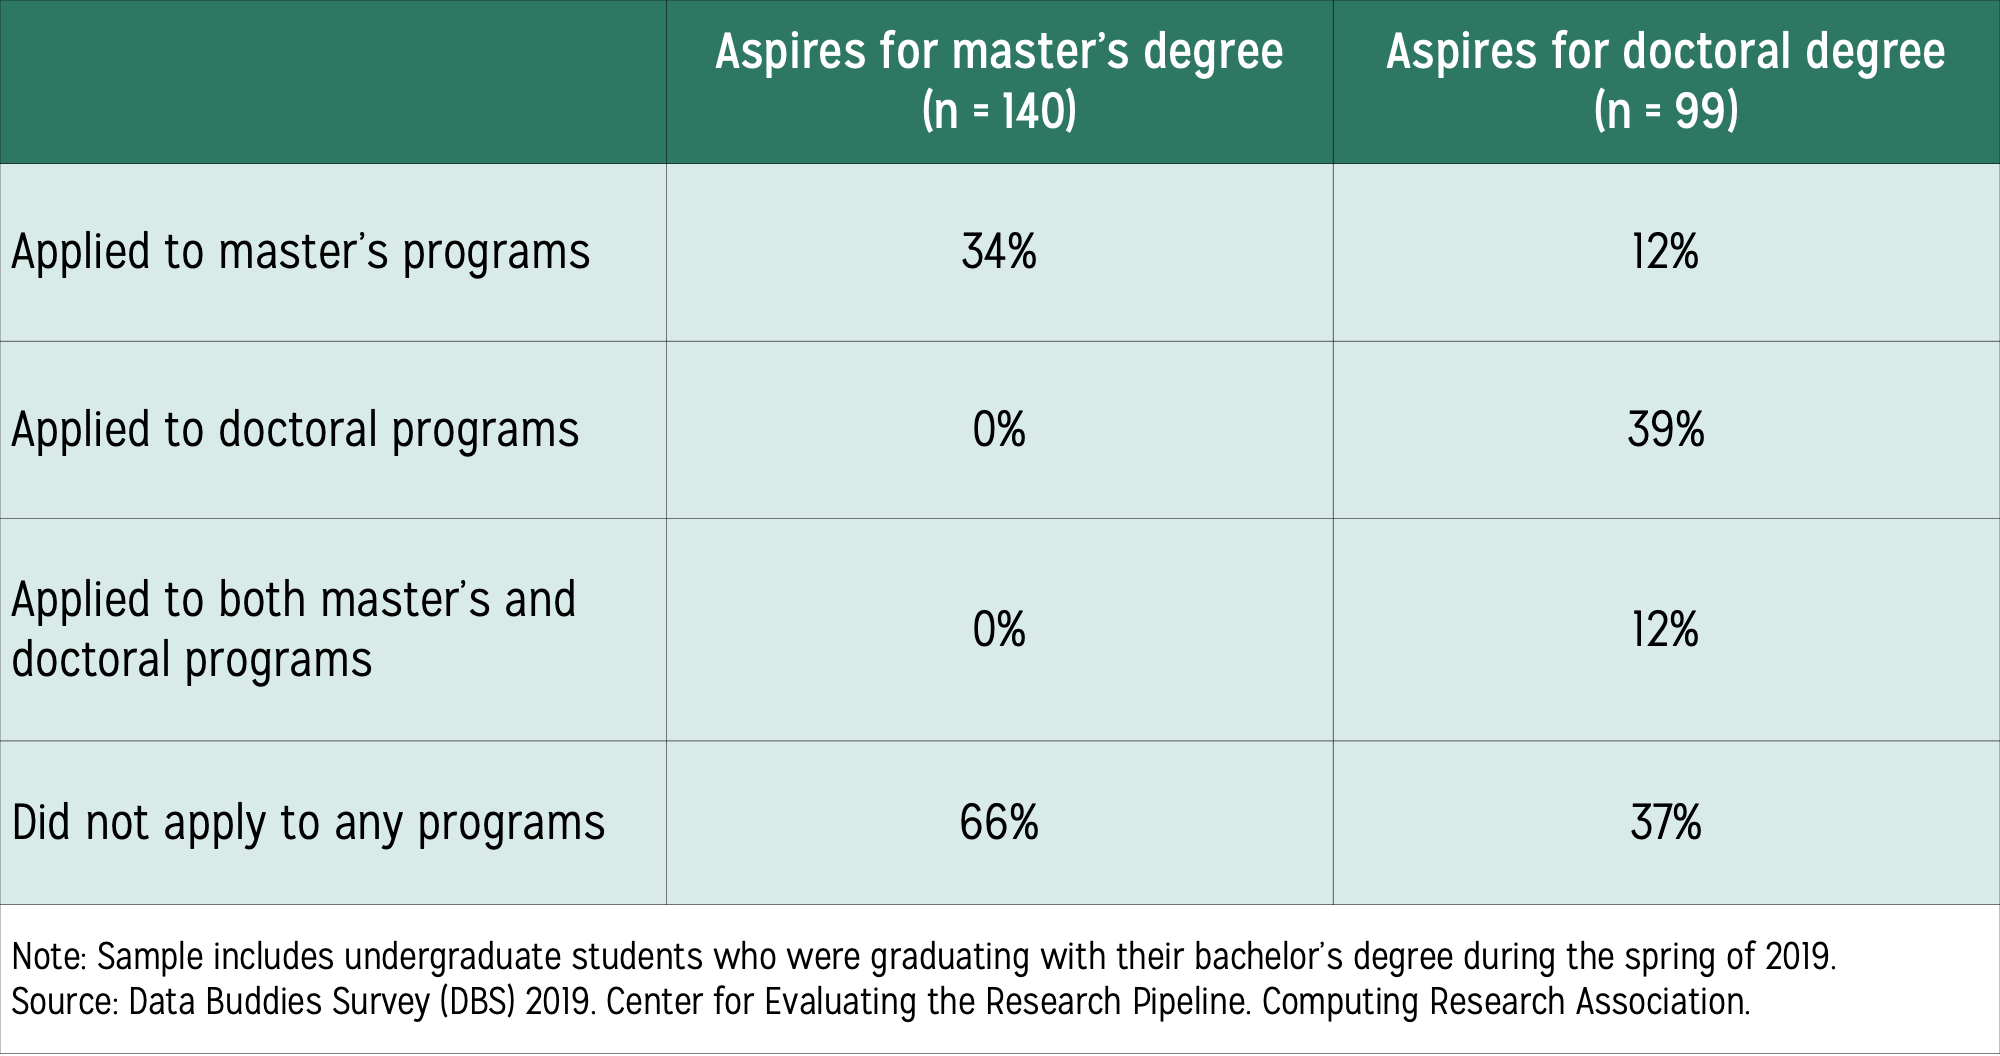 Table displaying information on graduate school applications by students' highest degree aspirations as either master's or doctoral